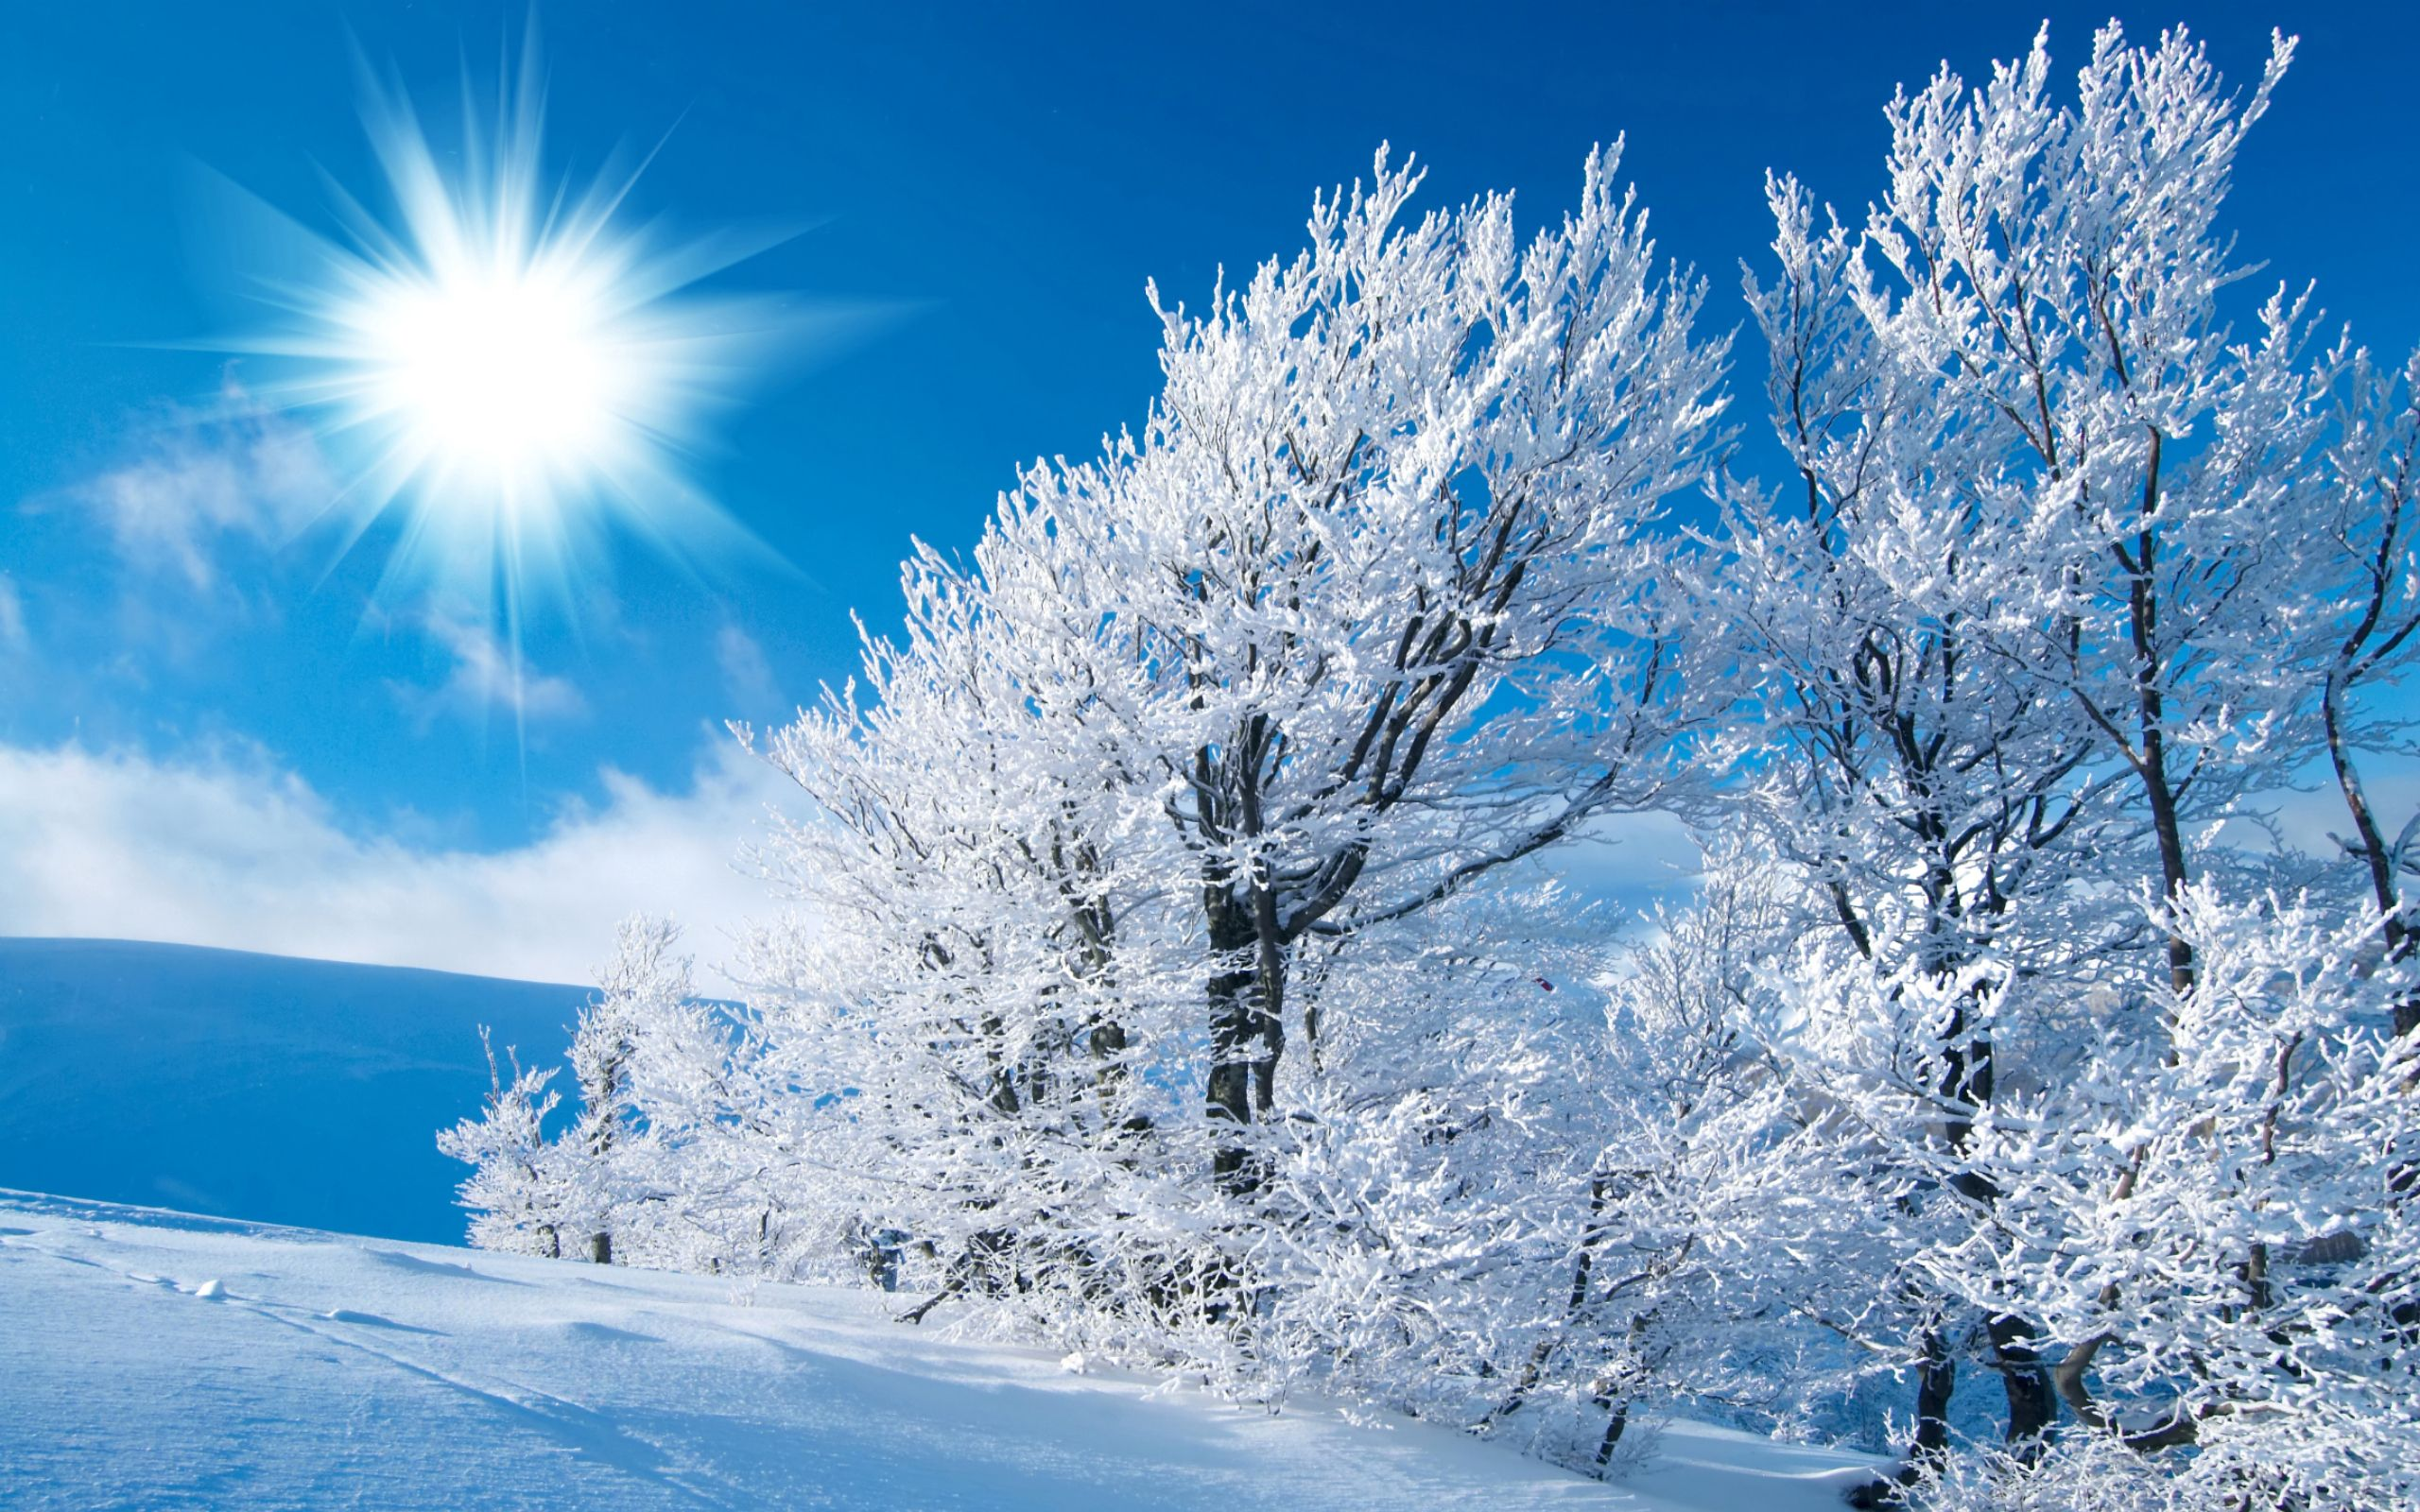 snow scenery full hd - photo #10